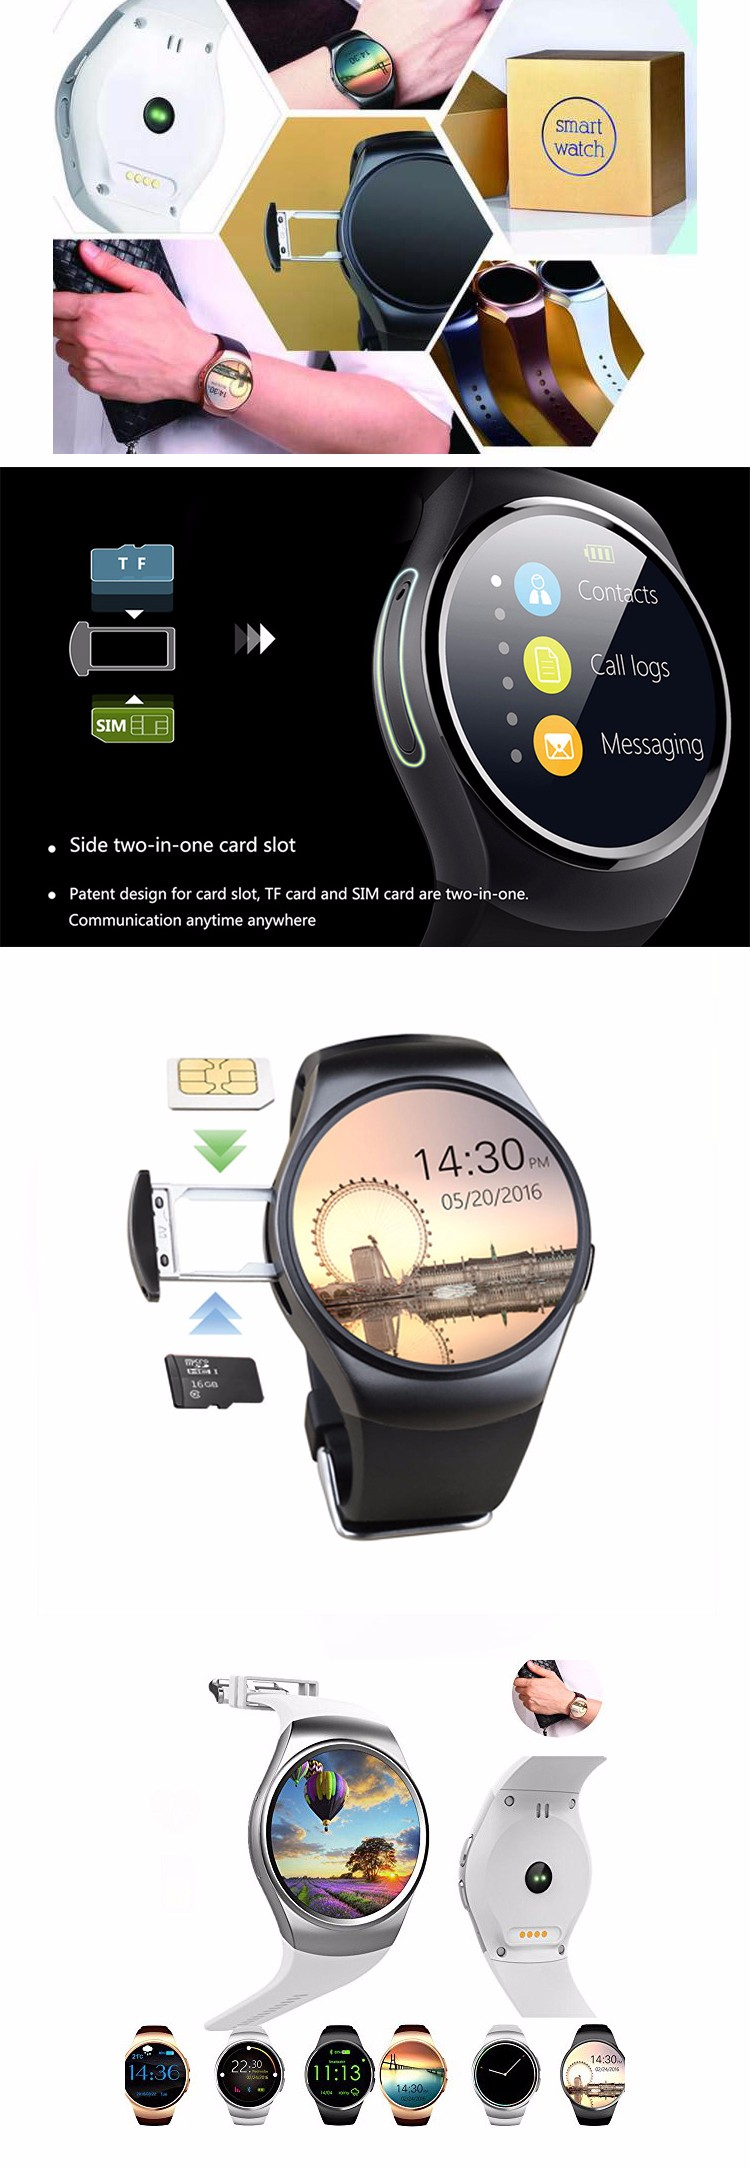 Excellent Round Touch Screen Kw18 Smartwatch - Buy Smartwatch Kw18,Heart  Rate Monitor Watch Sport Kw18 Smart Watch Oem Kw18 Watch,Kingwear Kw18  Round